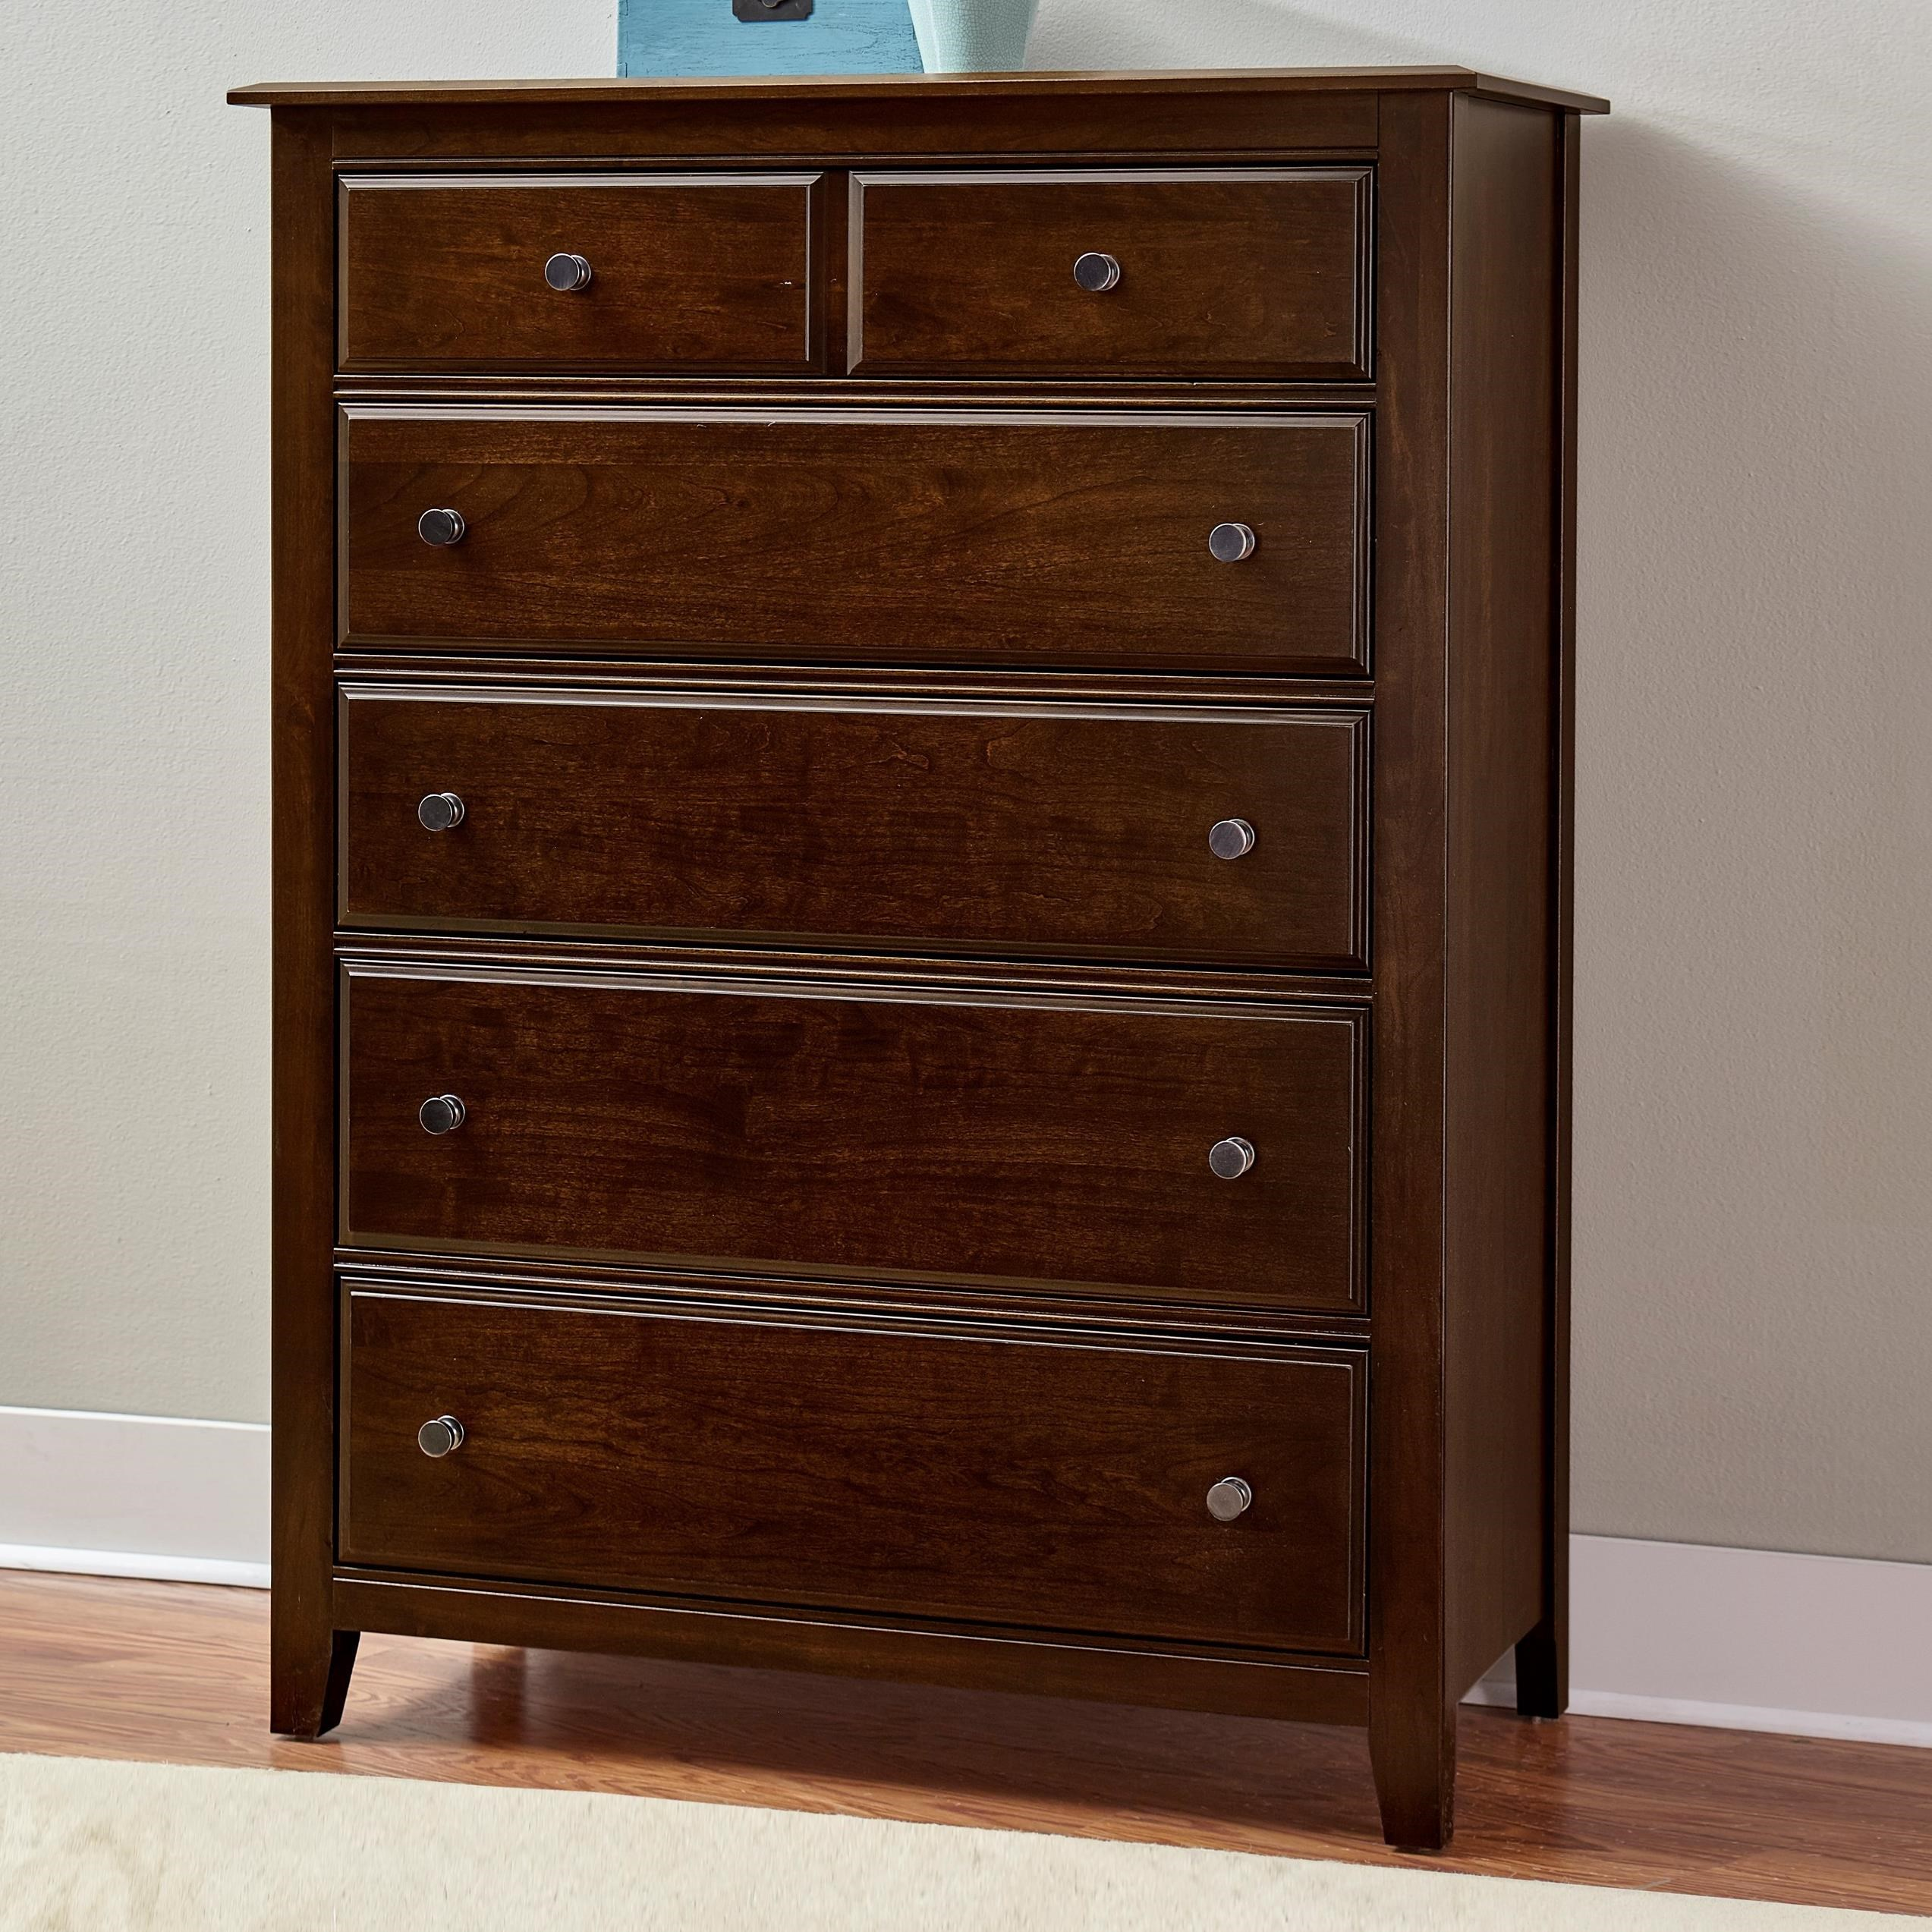 Artisan Choices Loft Chest - 5 Drawers by Artisan & Post at Zak's Home